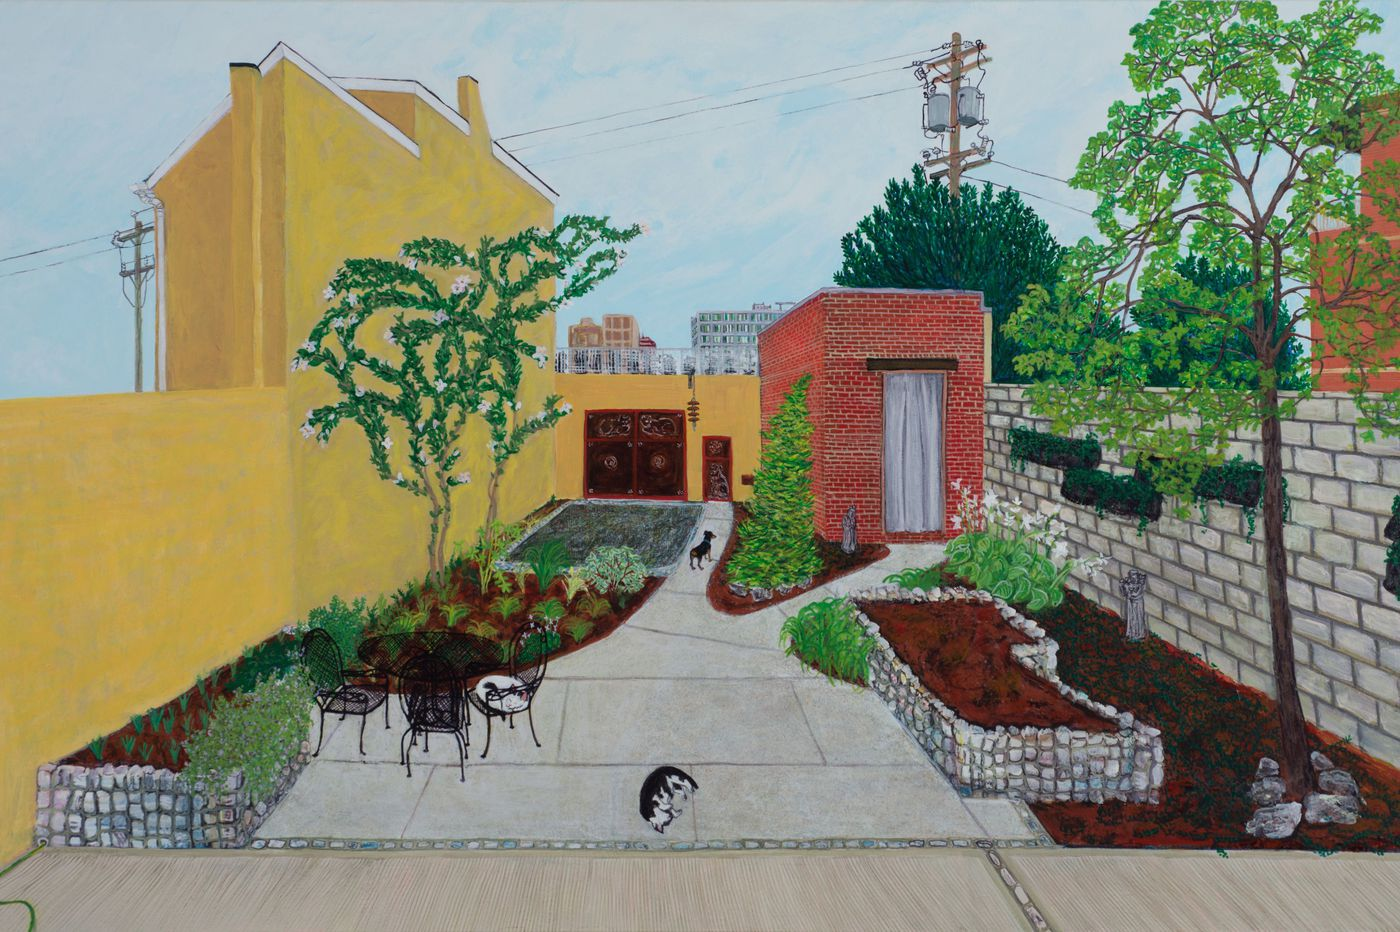 Rail Park activist's art is one of best shows to see in Philly galleries this month